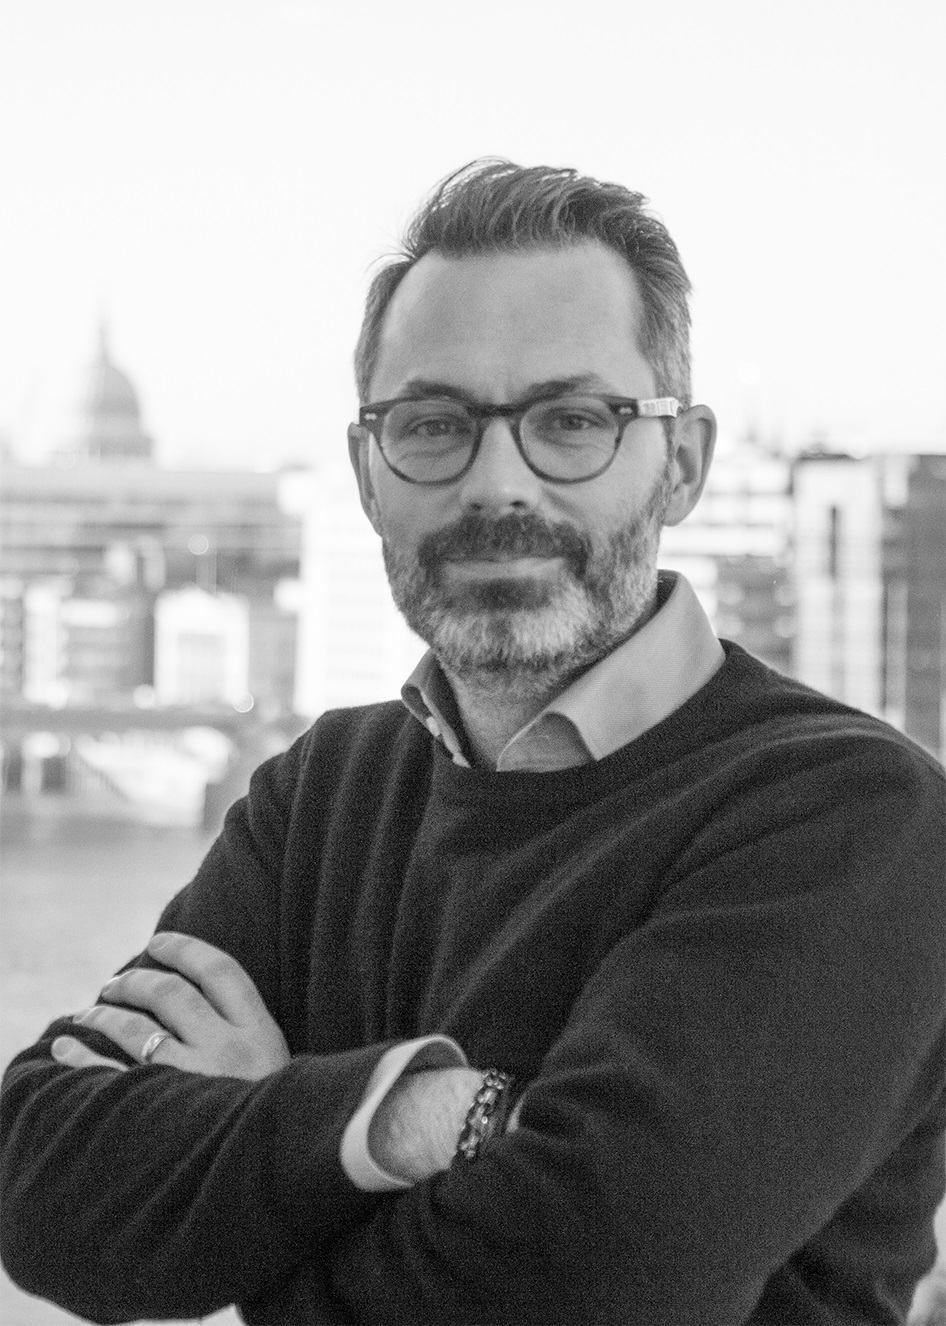 Richard Jones, new executive creative director at Landor